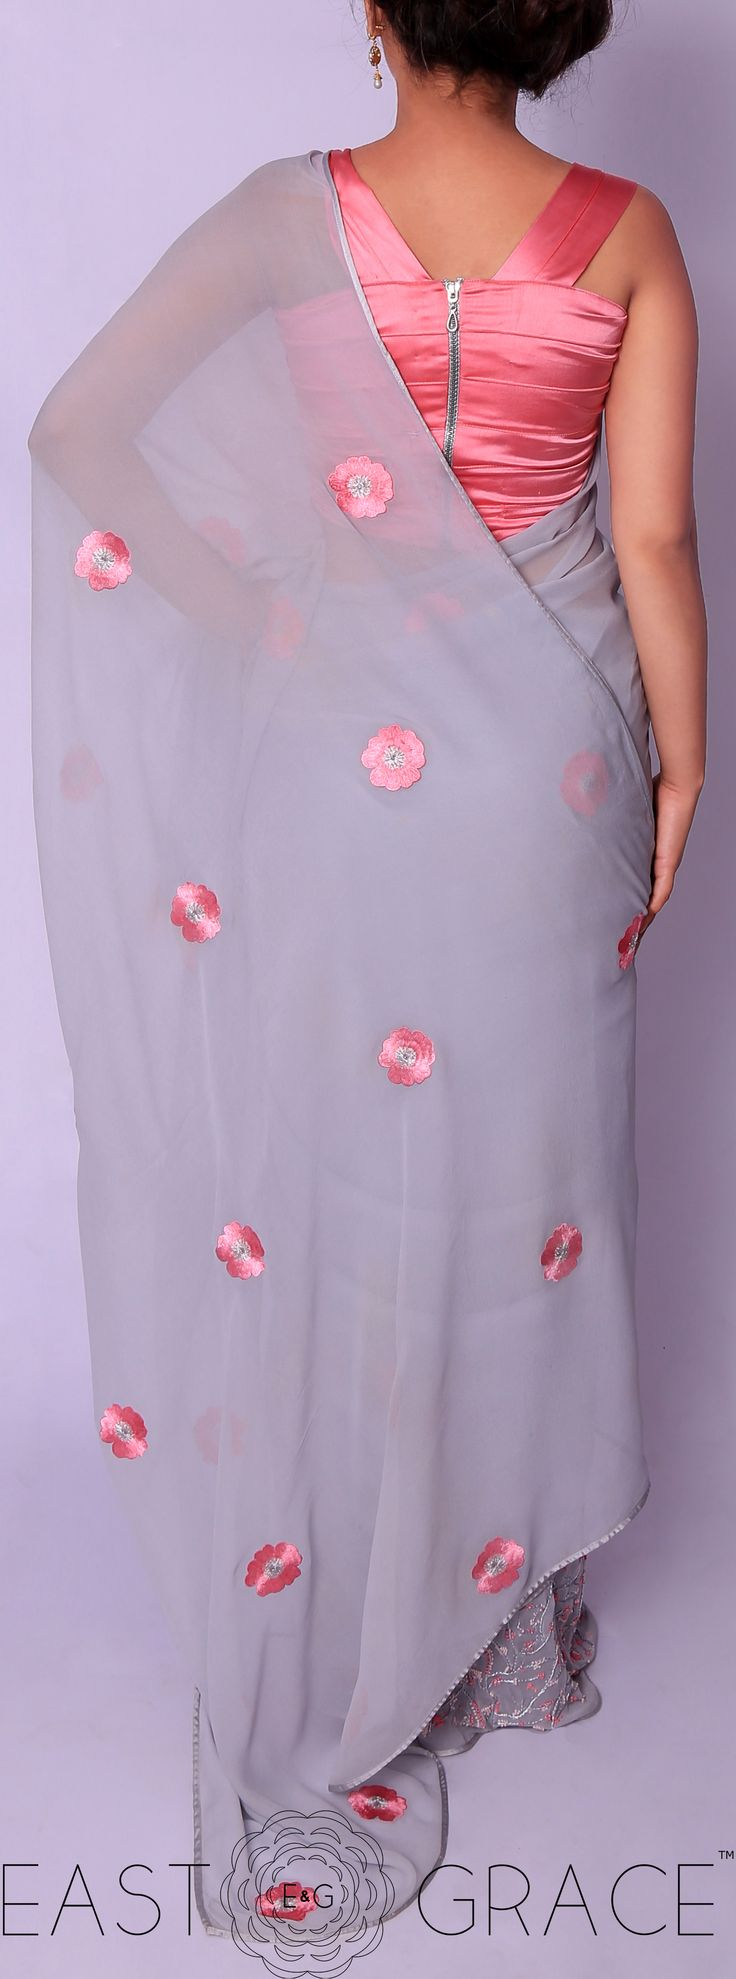 Presenting a light steel blue pure georgette saree with Briar Rose flowers, hand-crafted in silk thread embroidery all over the pallu. The skirt of the saree has climbing cherry blossom floral vines decorated with pink French knots. #saree #lehenga #indowestern #eastandgrace #love #indianwedding #onlineshopping #indianfashion #pastel #satin #ribbon #lightsteelblue #nature #handembroidered #puregeorgette